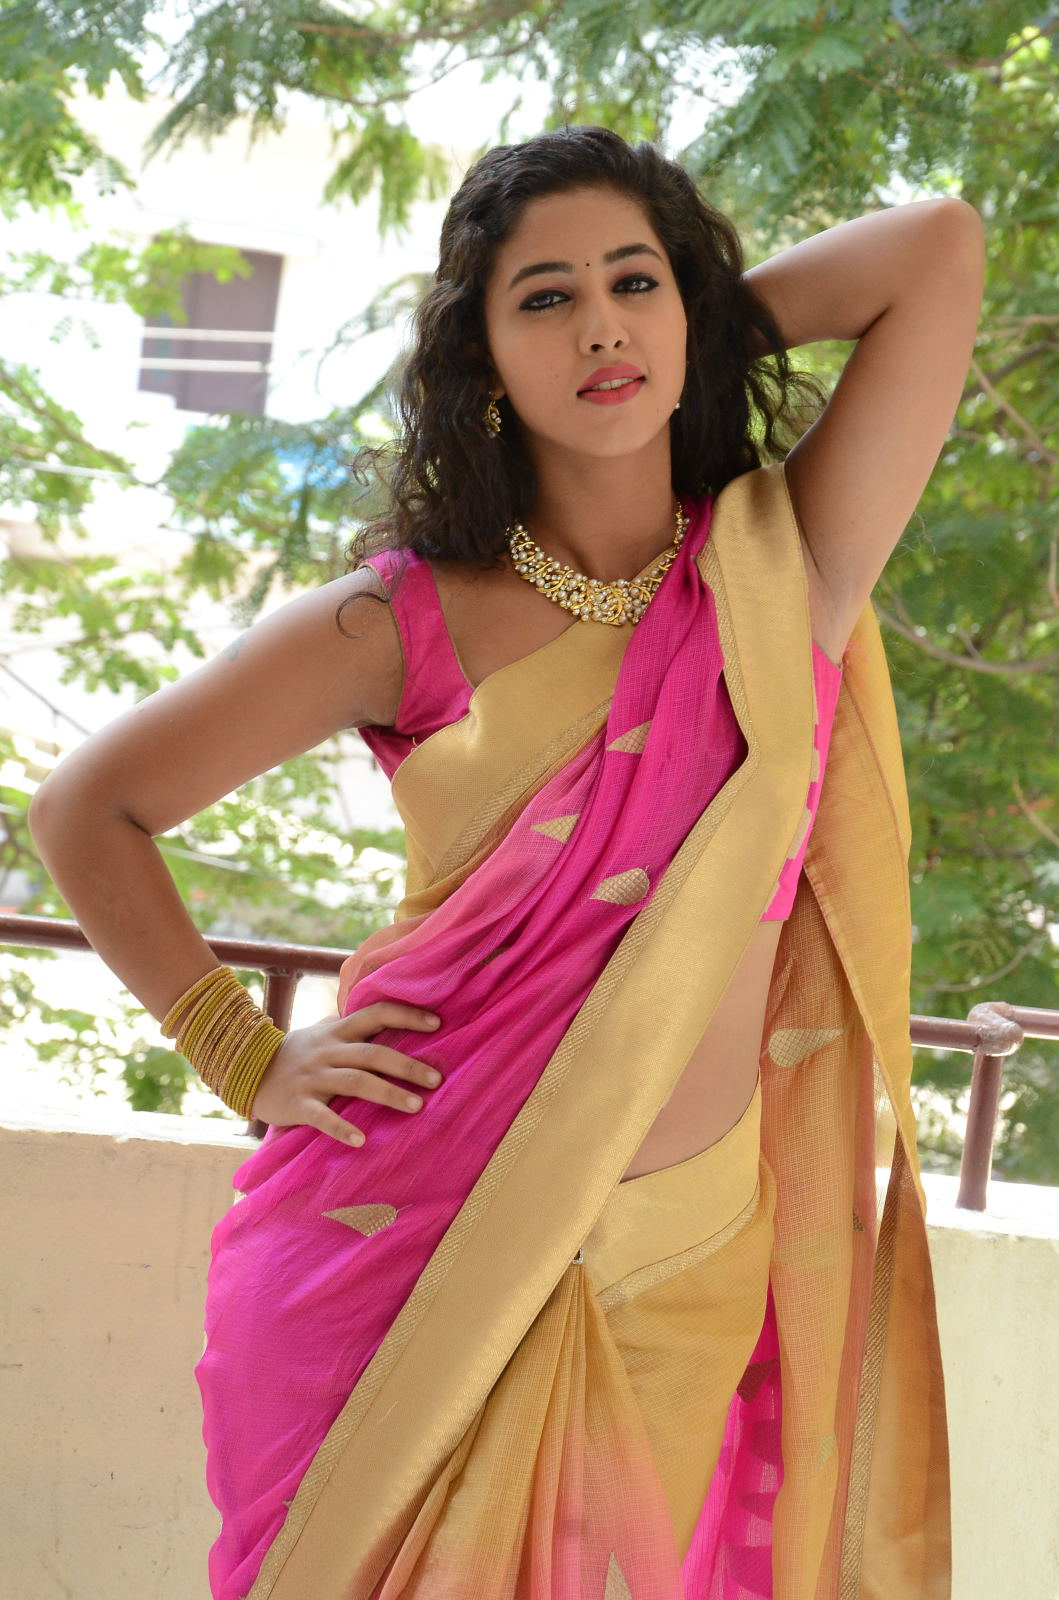 pavani new photos in saree-HQ-Photo-19